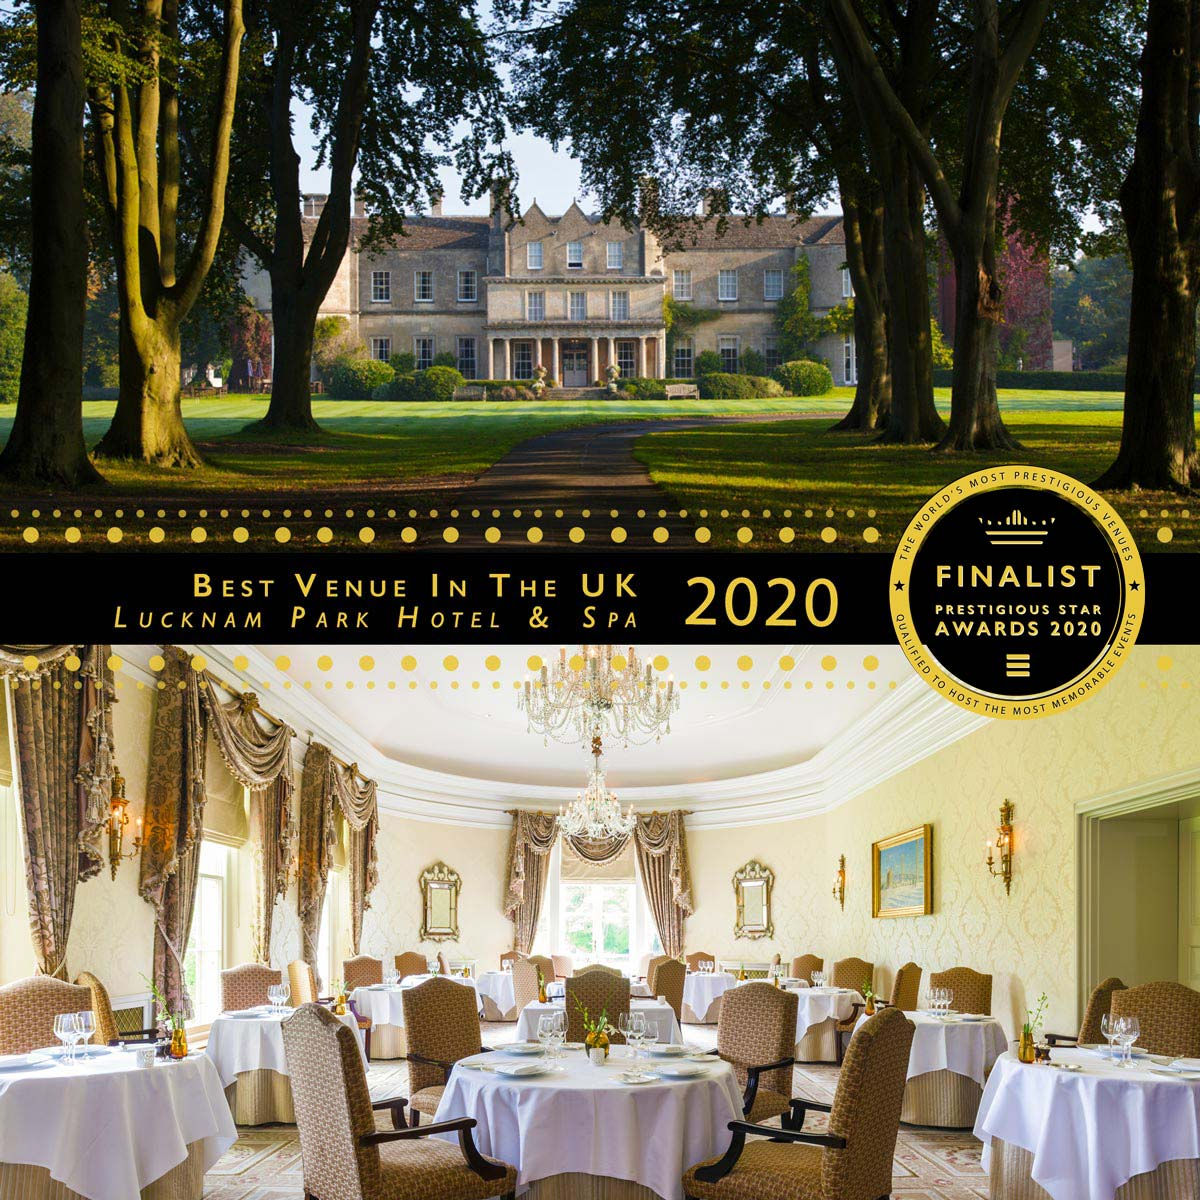 The Walmesley Room at Lucknam Park Hotel & Spa